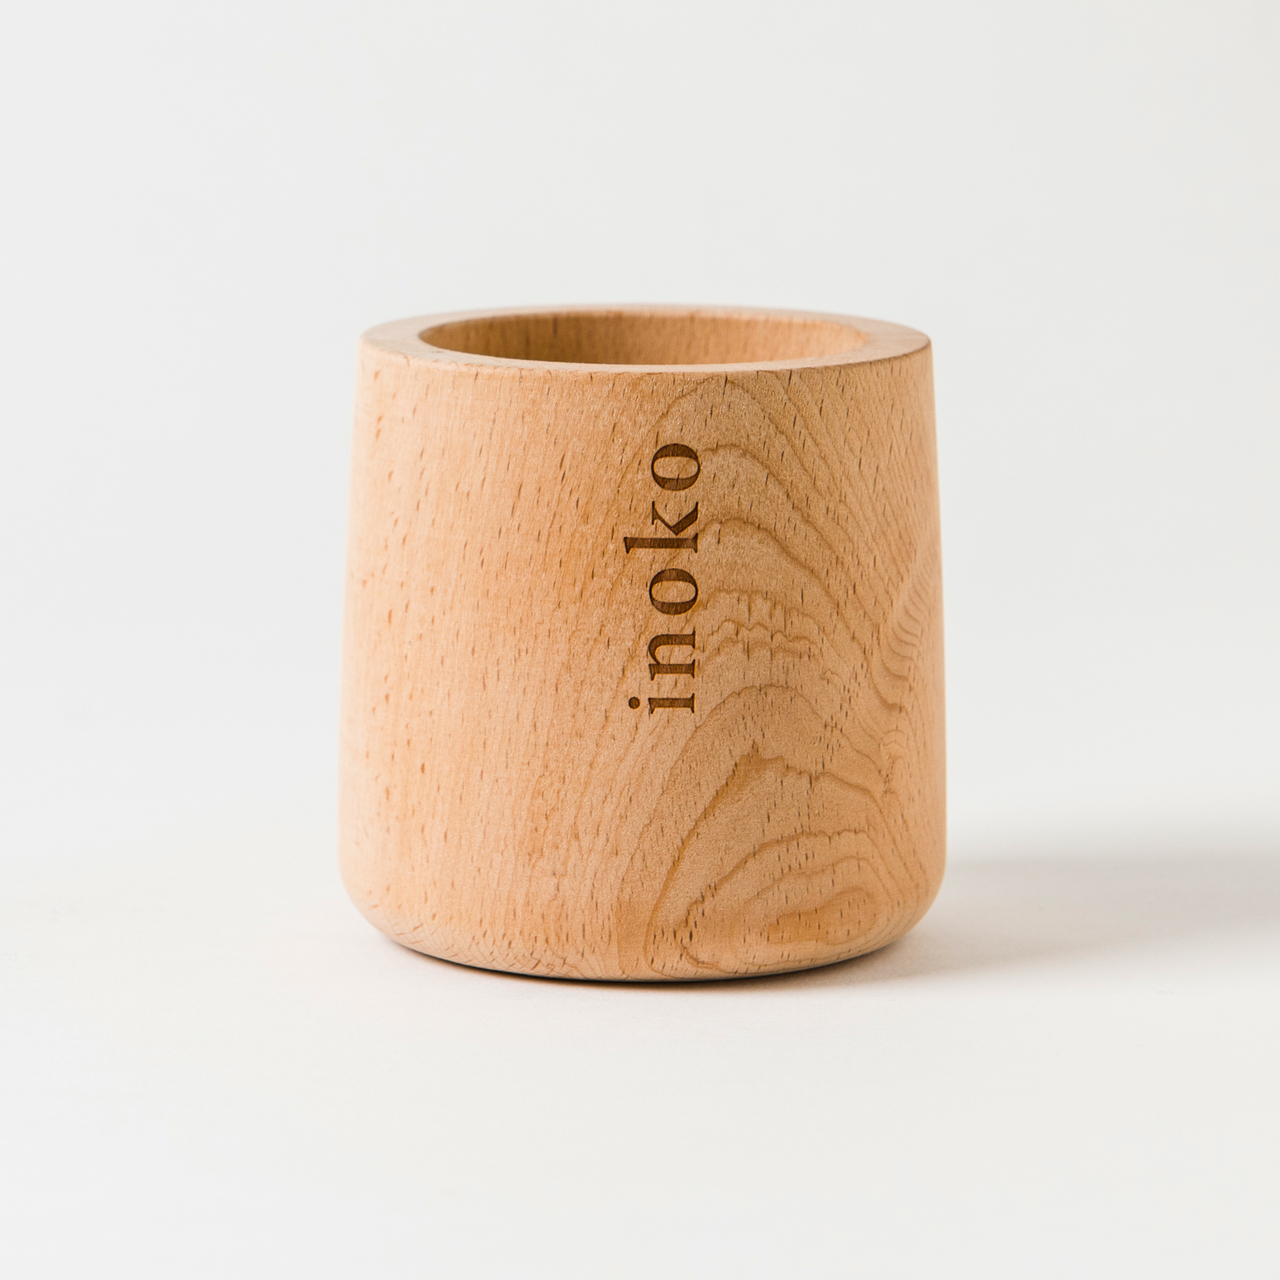 Inoko timber vessel | The Design Gift Shop